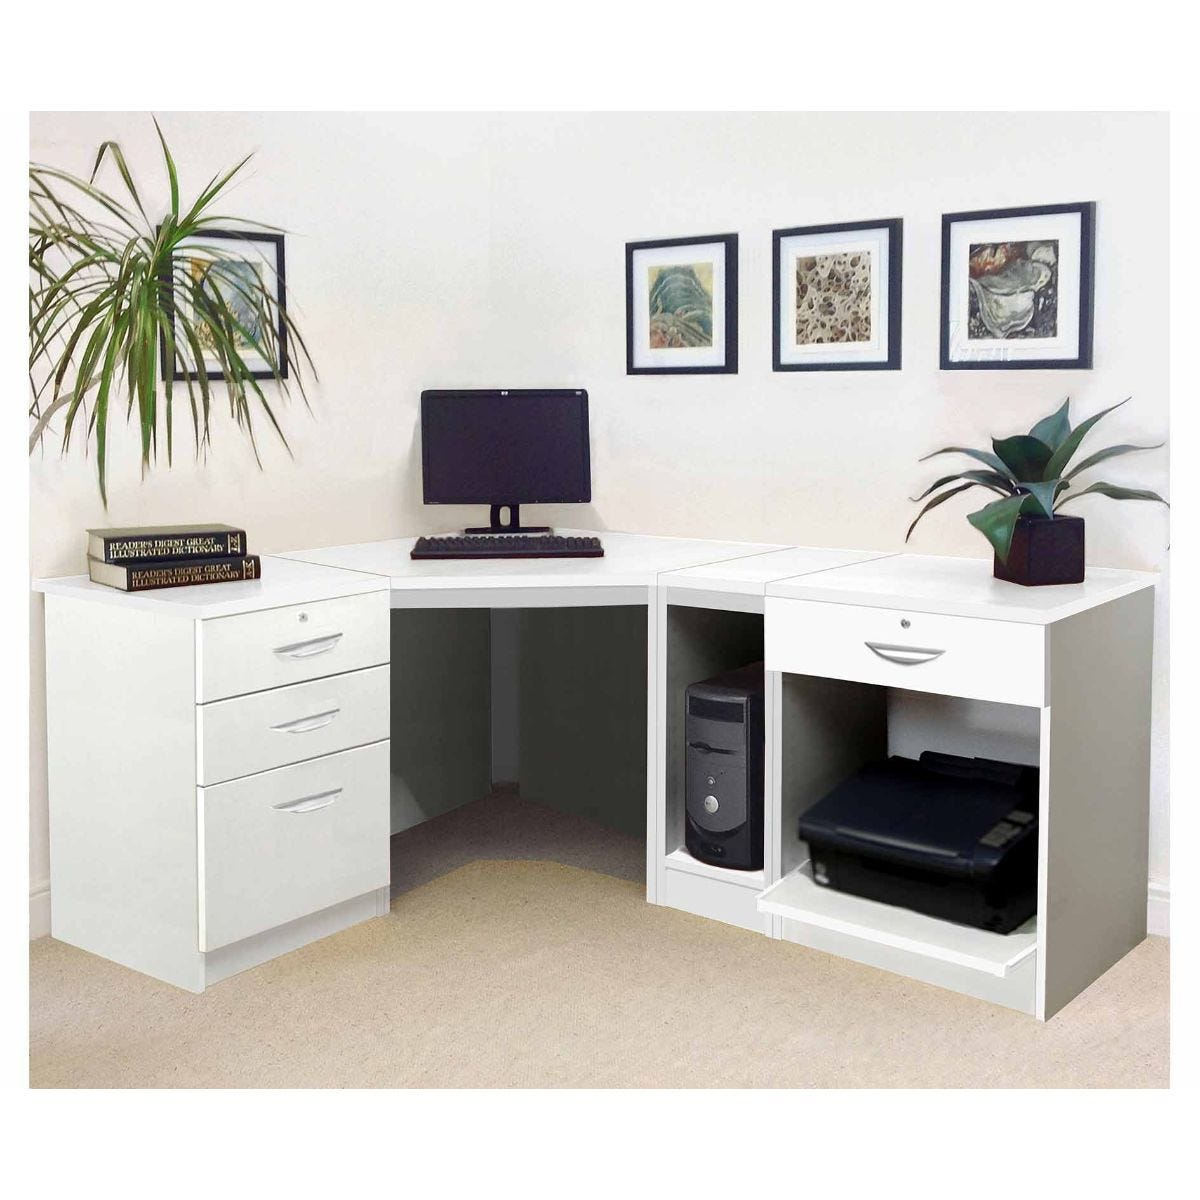 R White Home Office Wide Corner Desk Set, White